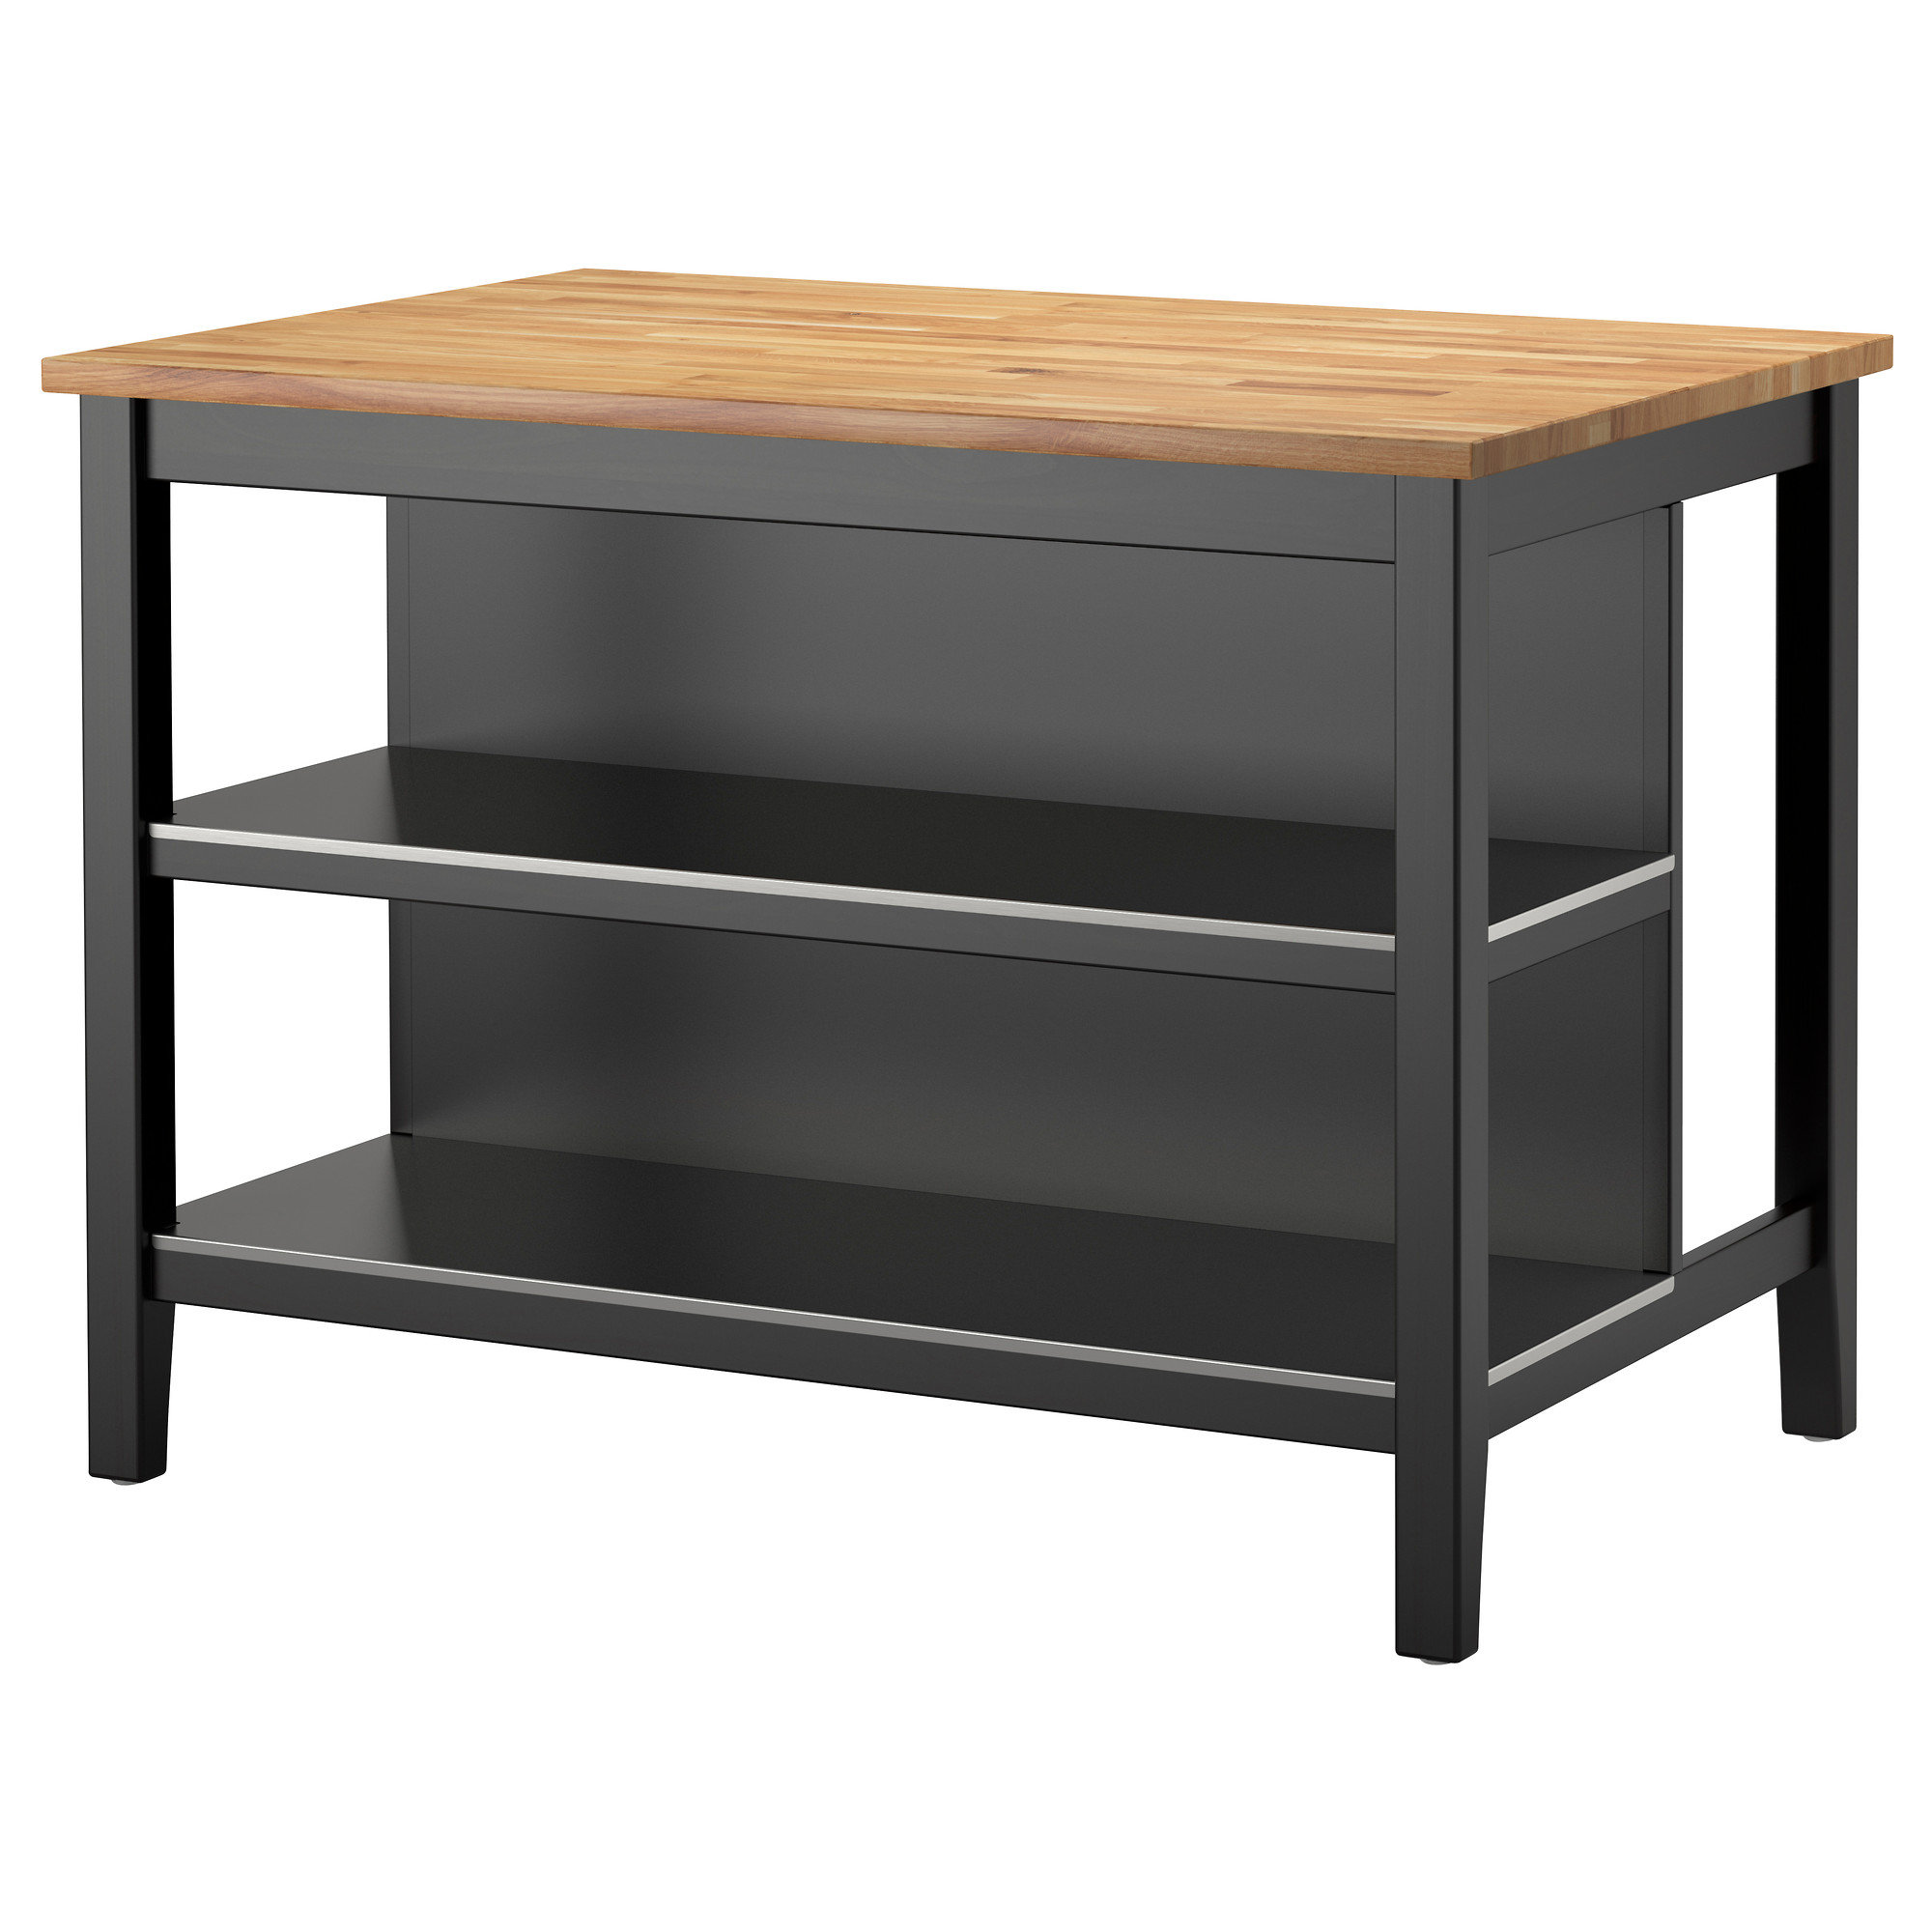 stenstorp kitchen island ikea from ikea live